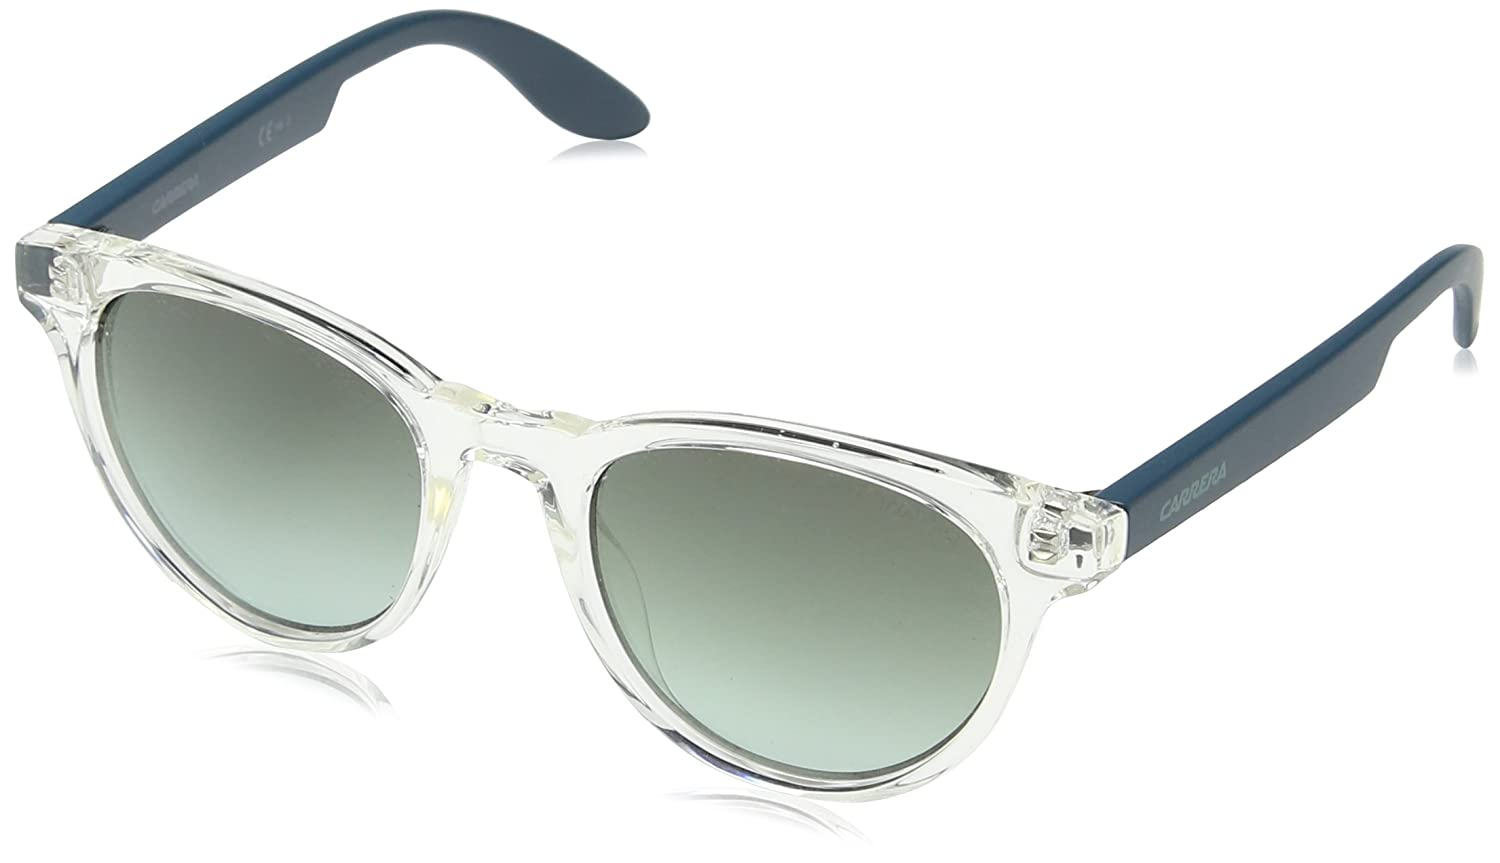 Carrera Junior Unisex Niños CARRERINO 18 PL RHY Gafas de sol, Negro (Crystal Ptrl/Grey Green Ds), 46